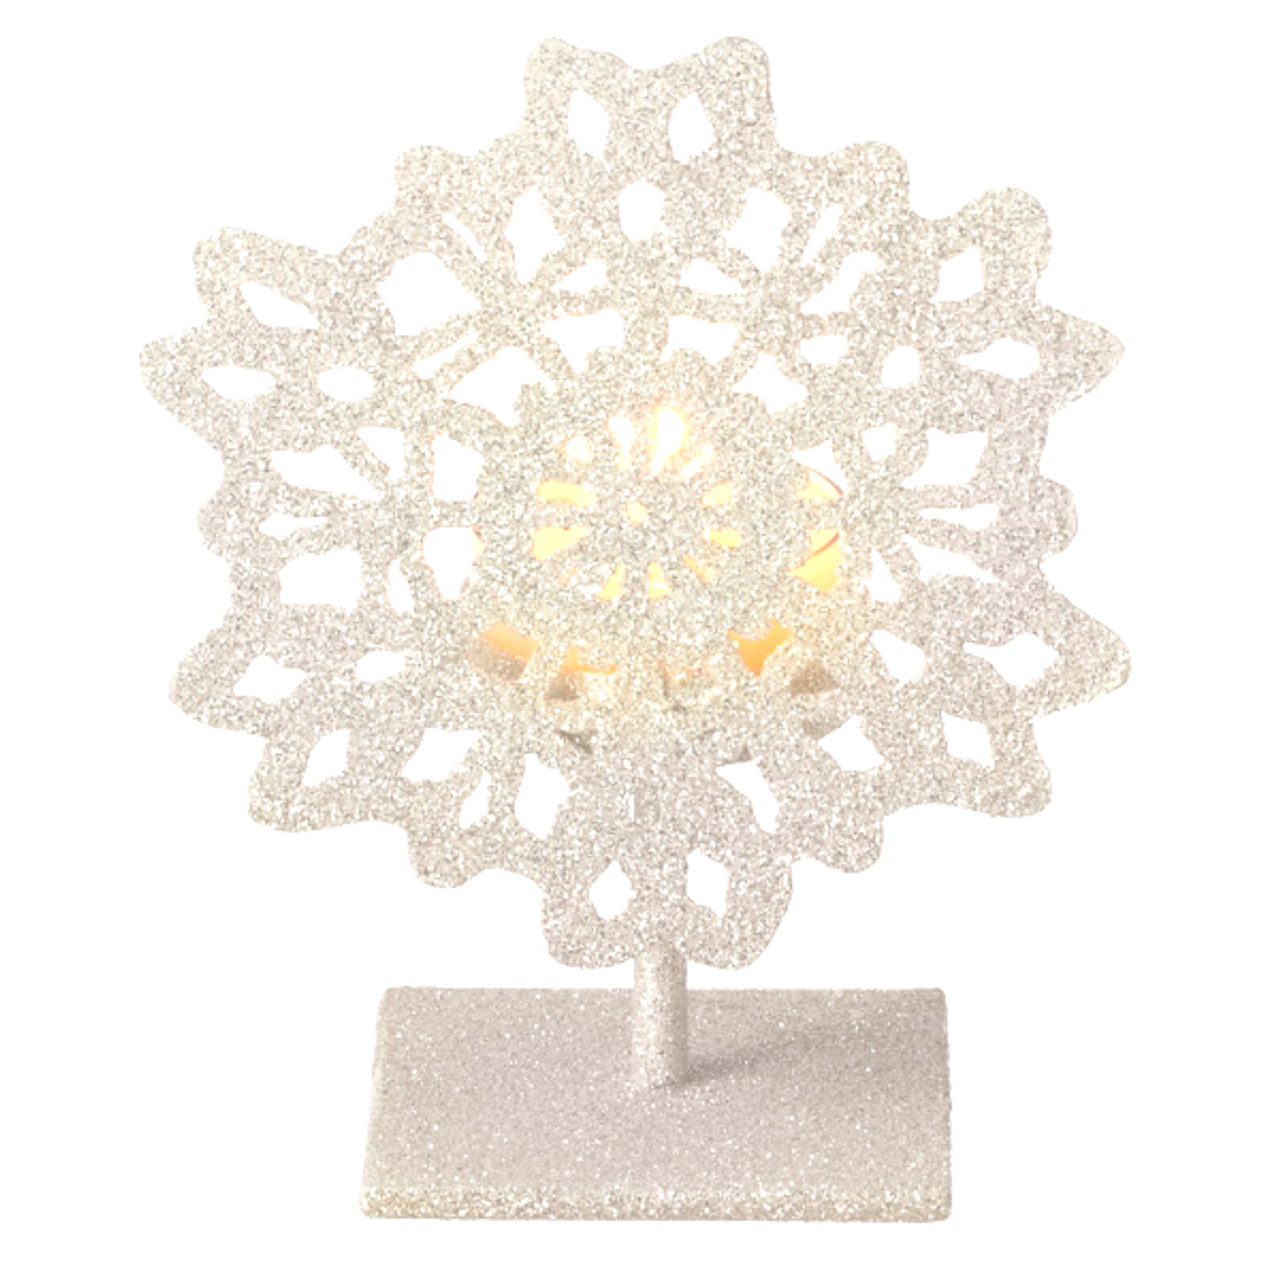 5 Silent Luxury Off White Glitter Drenched Snowflake Tea Light Candle Holder Christmas Central